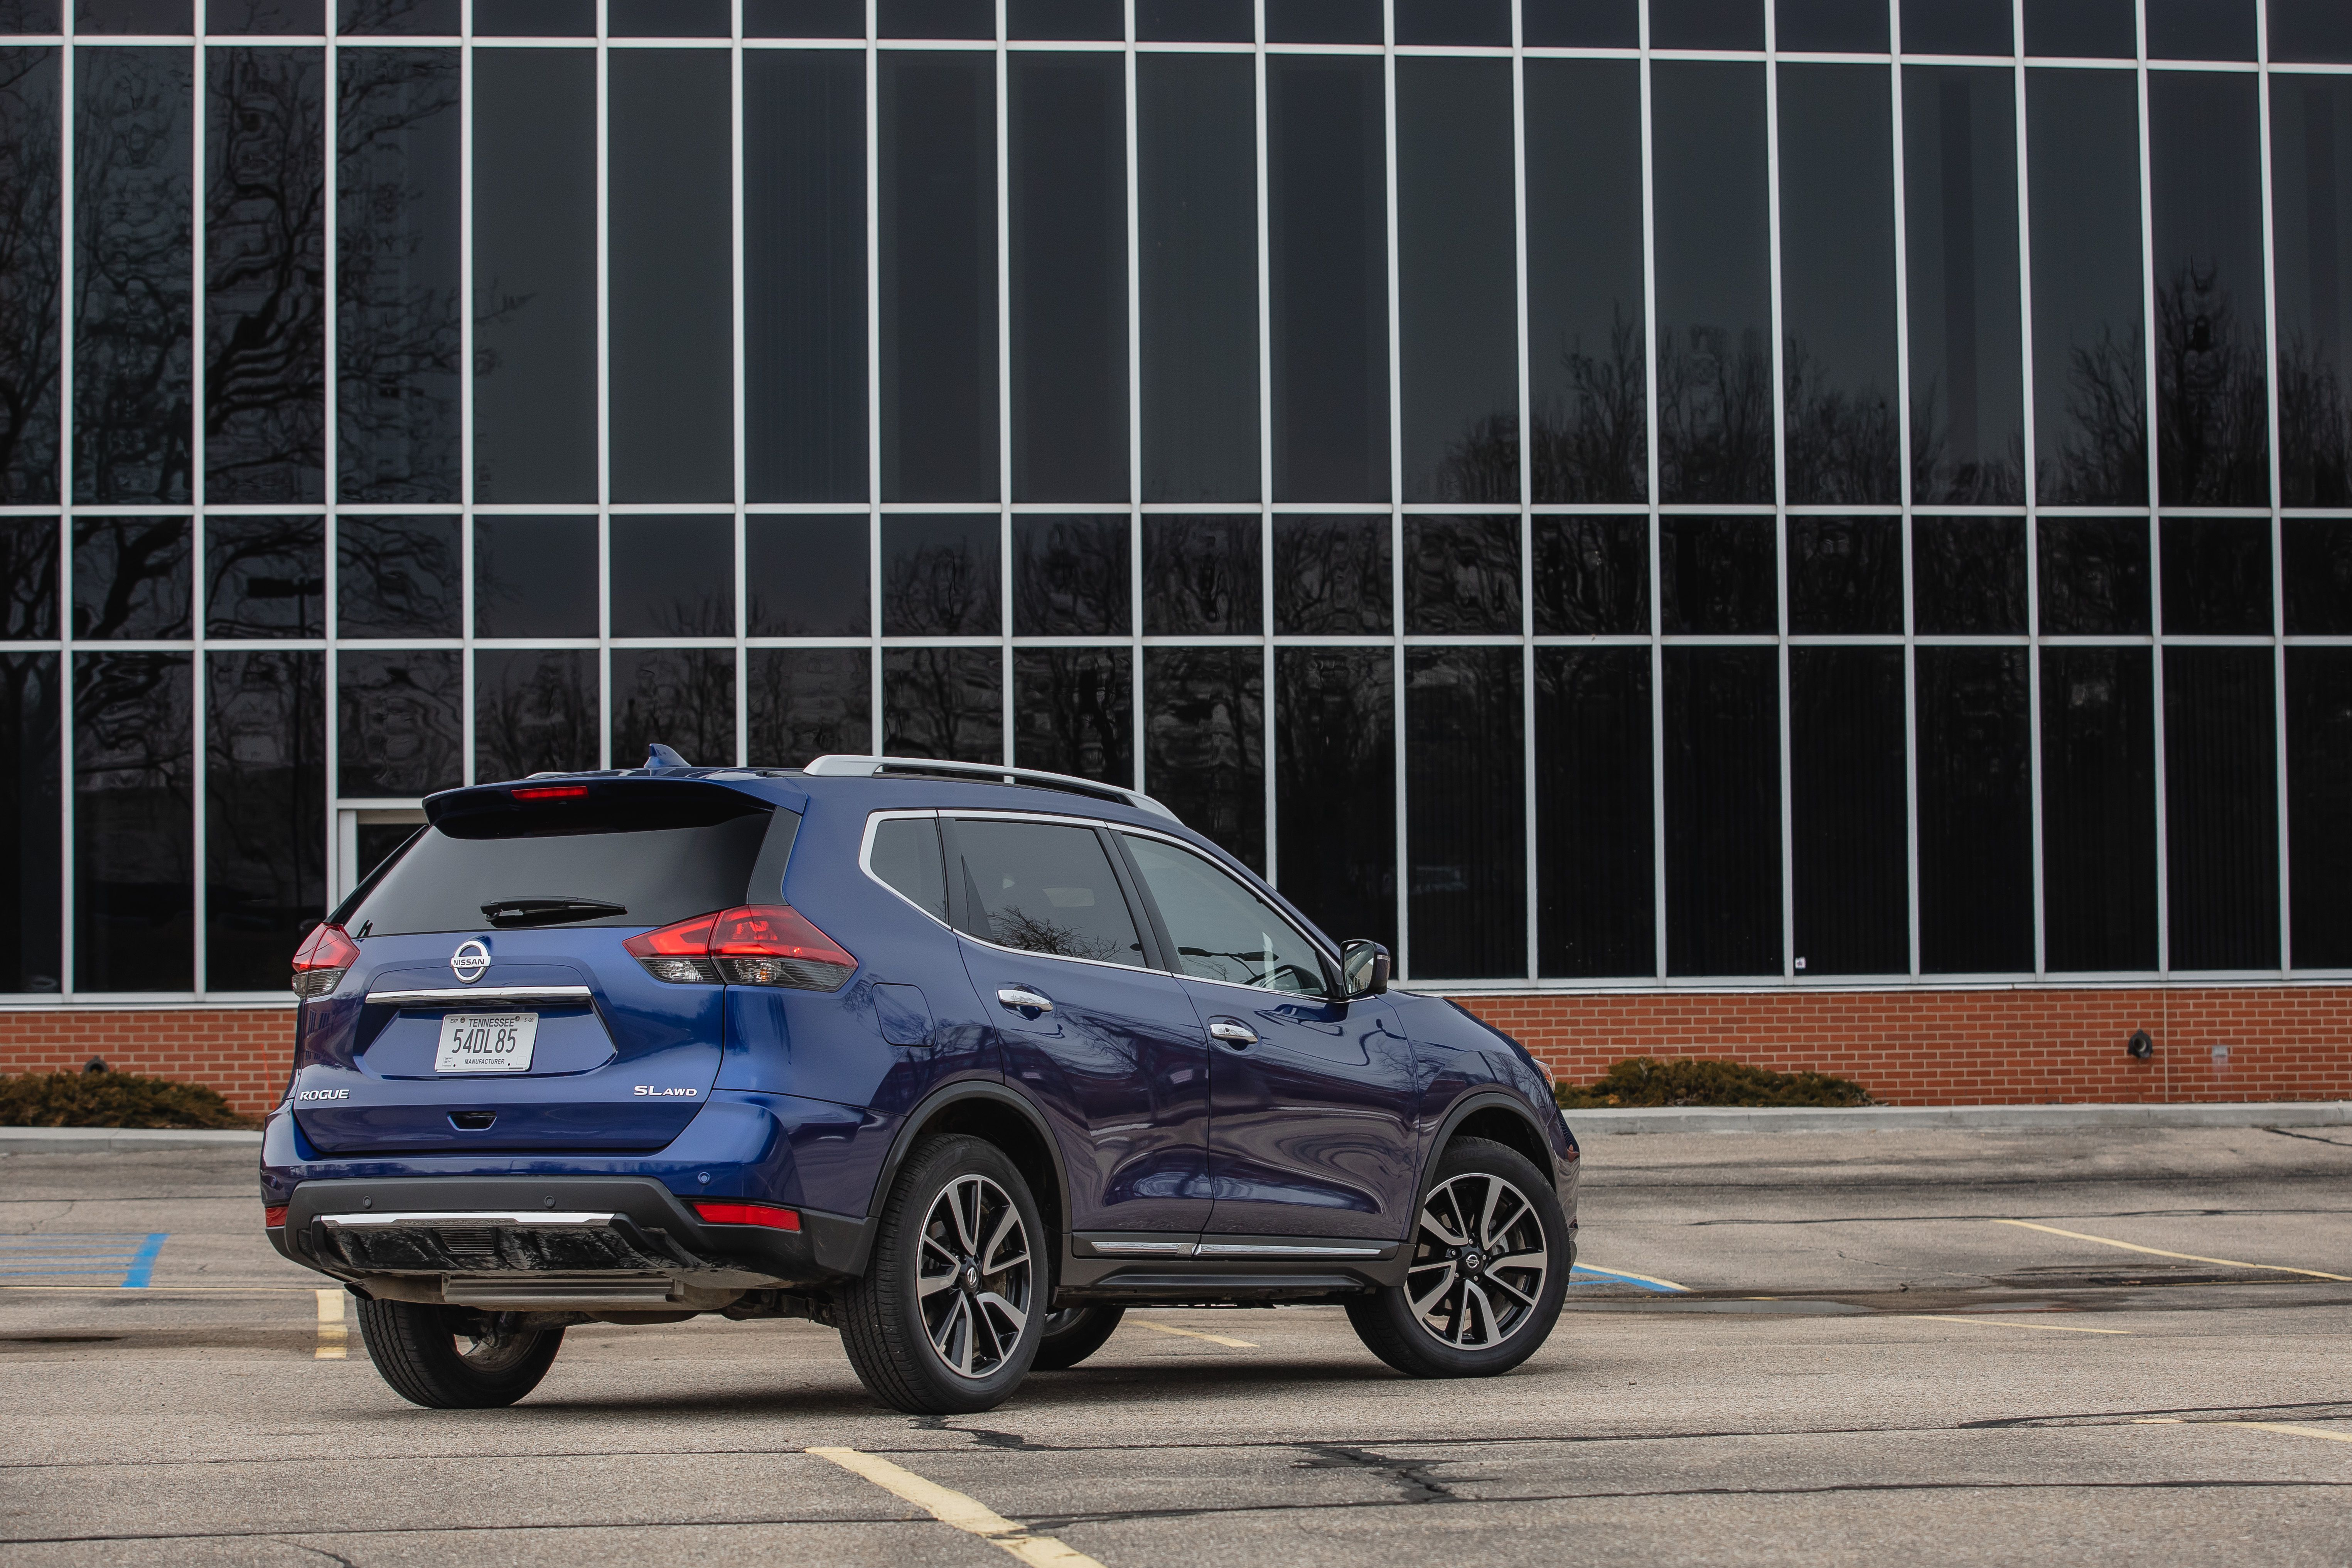 2020 Nissan Rogue Sl Is The Camry Of Crossovers